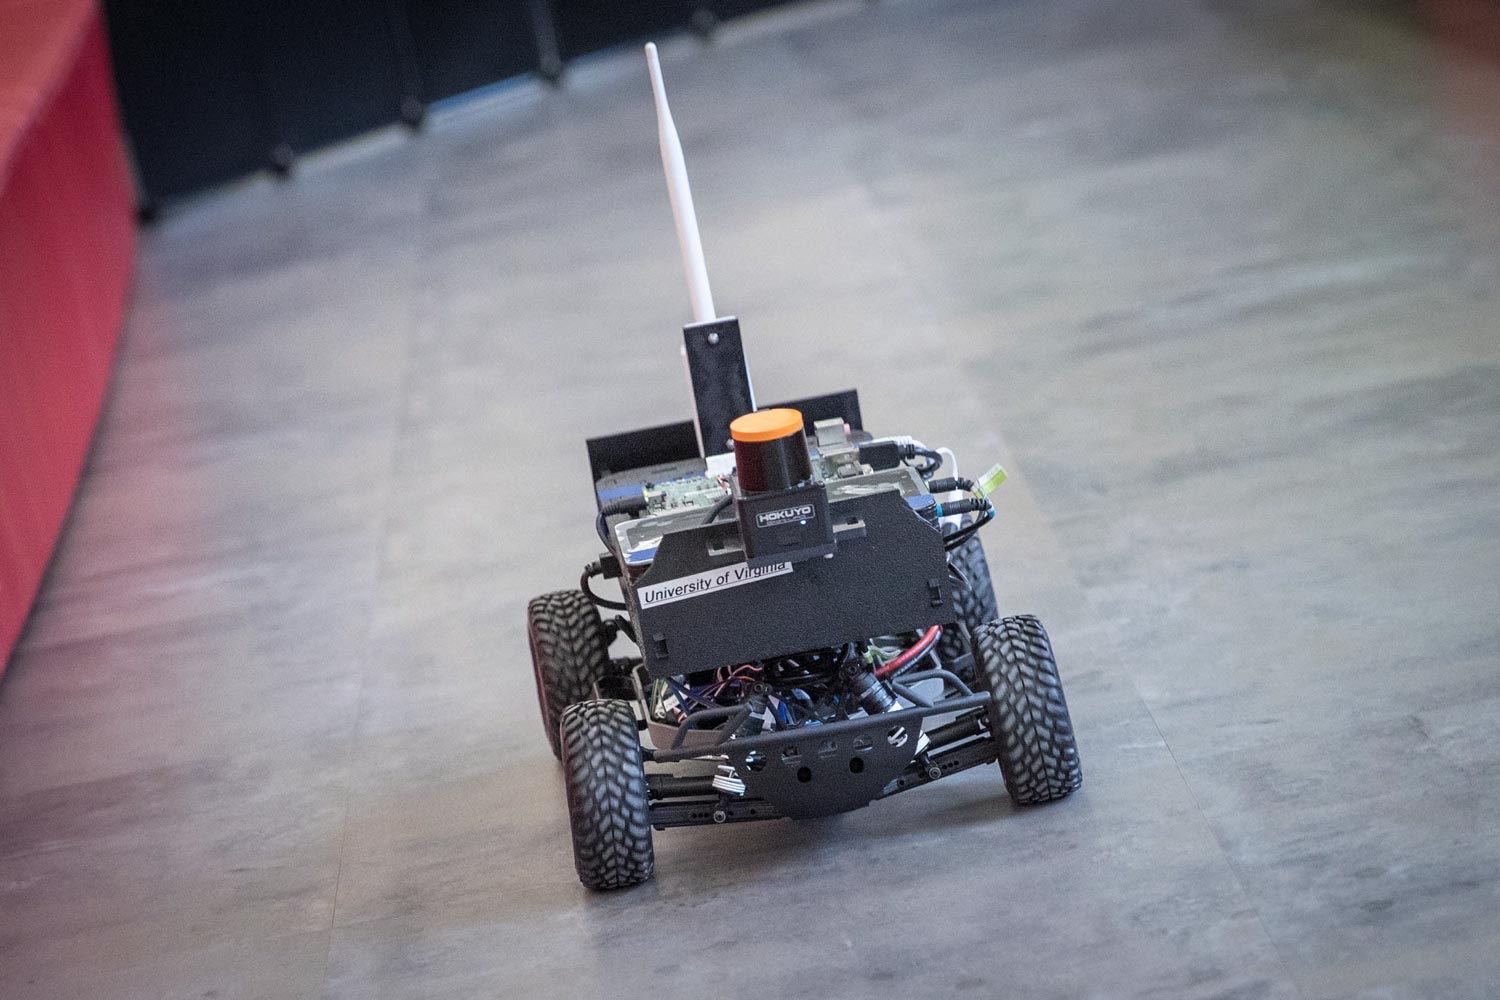 An autonomous car model is tested on a track in the Engineering School's Link Lab.